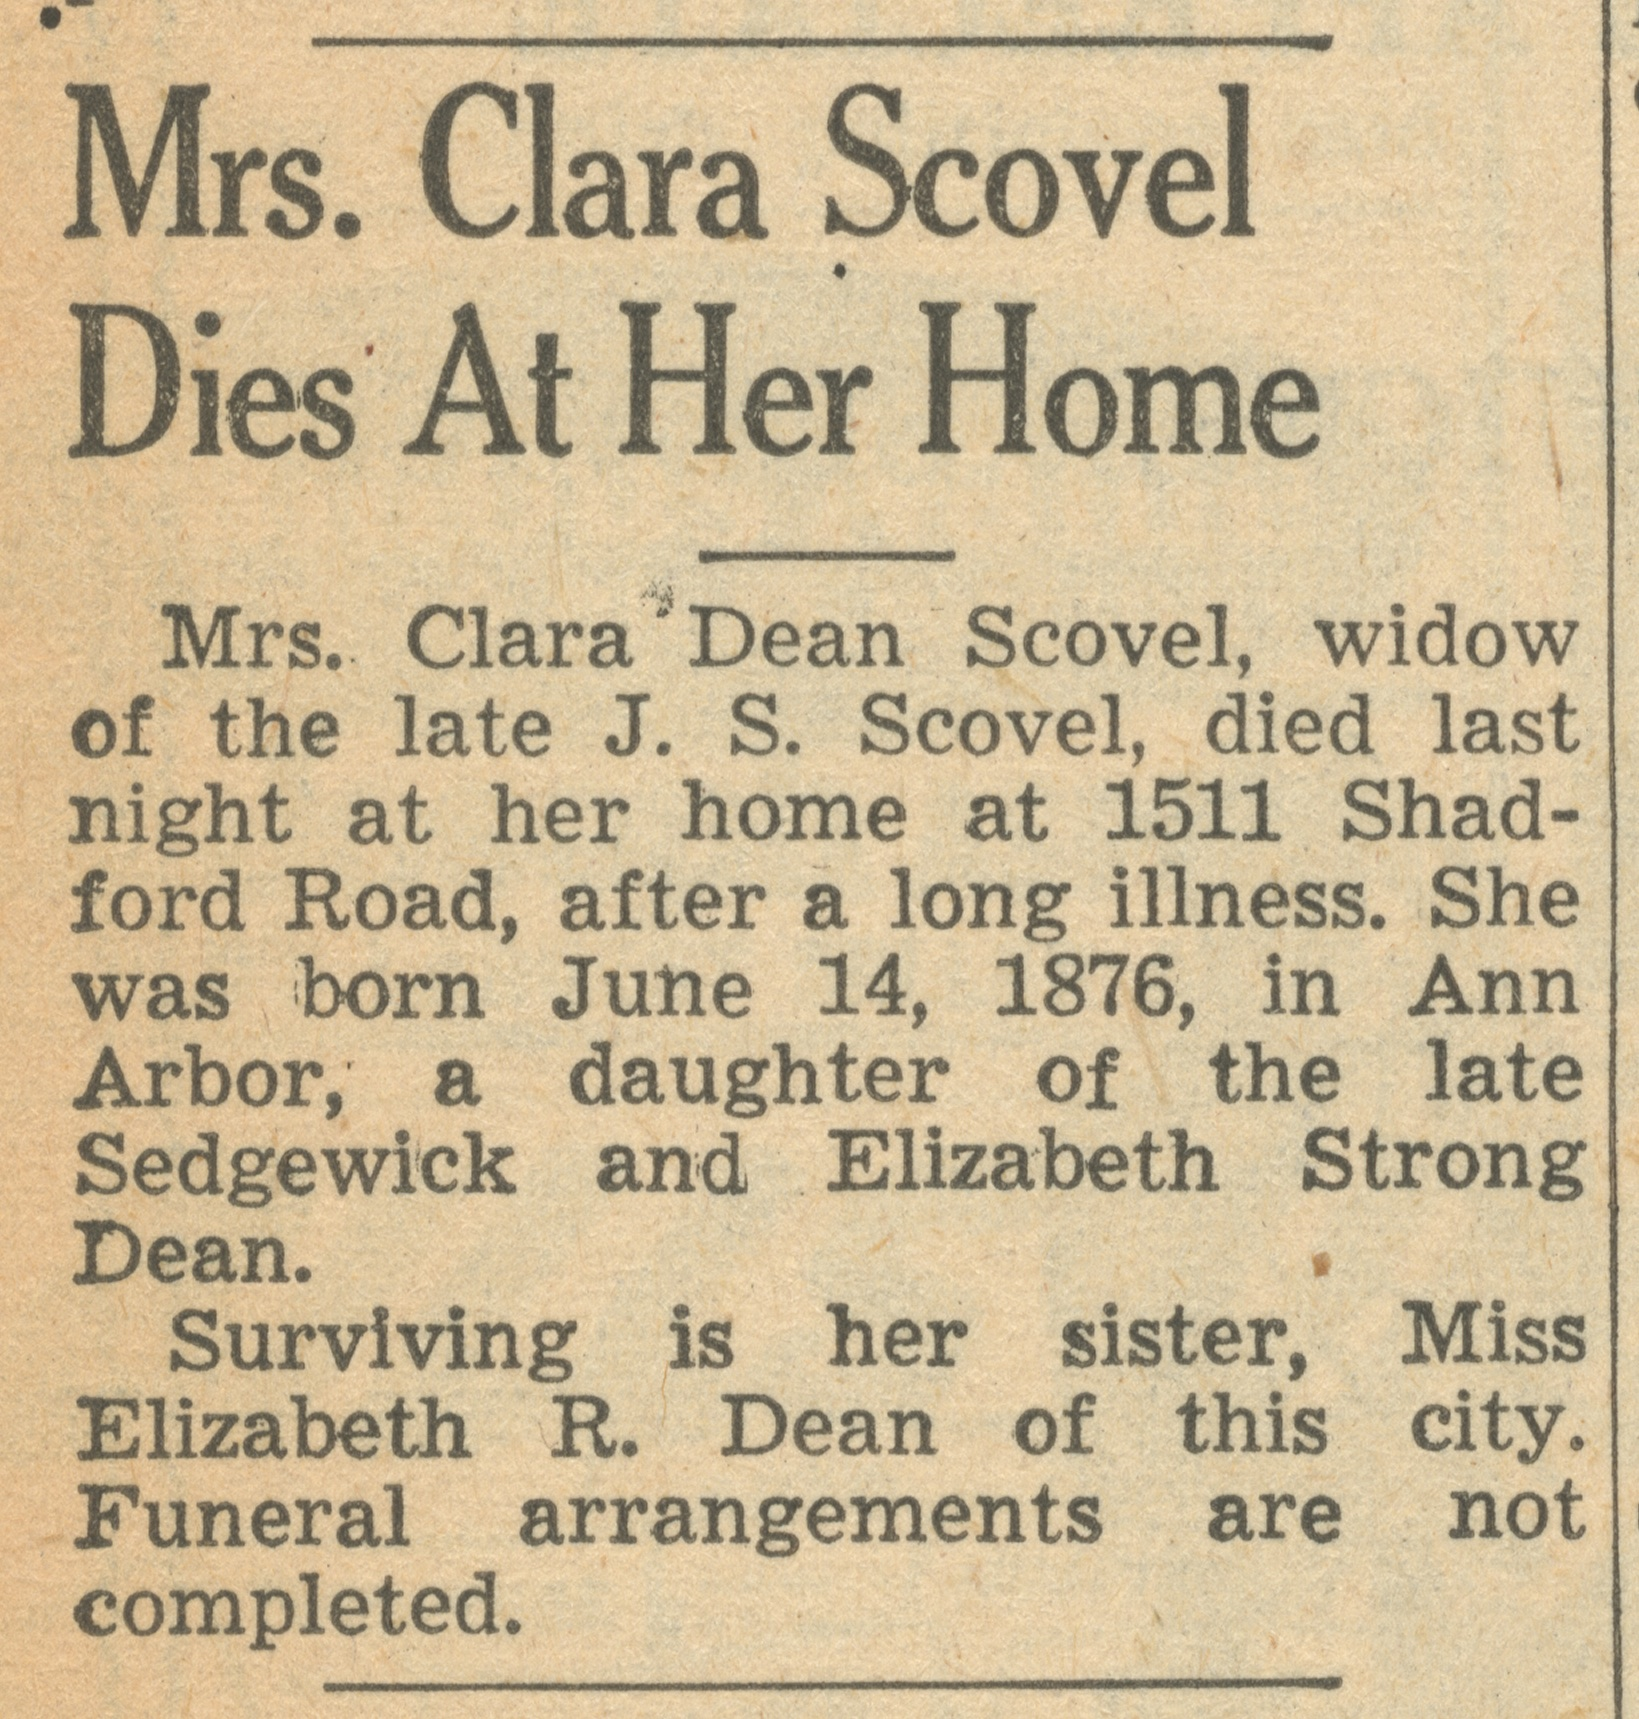 Mrs. Clara Scovel Dies At Her Home image